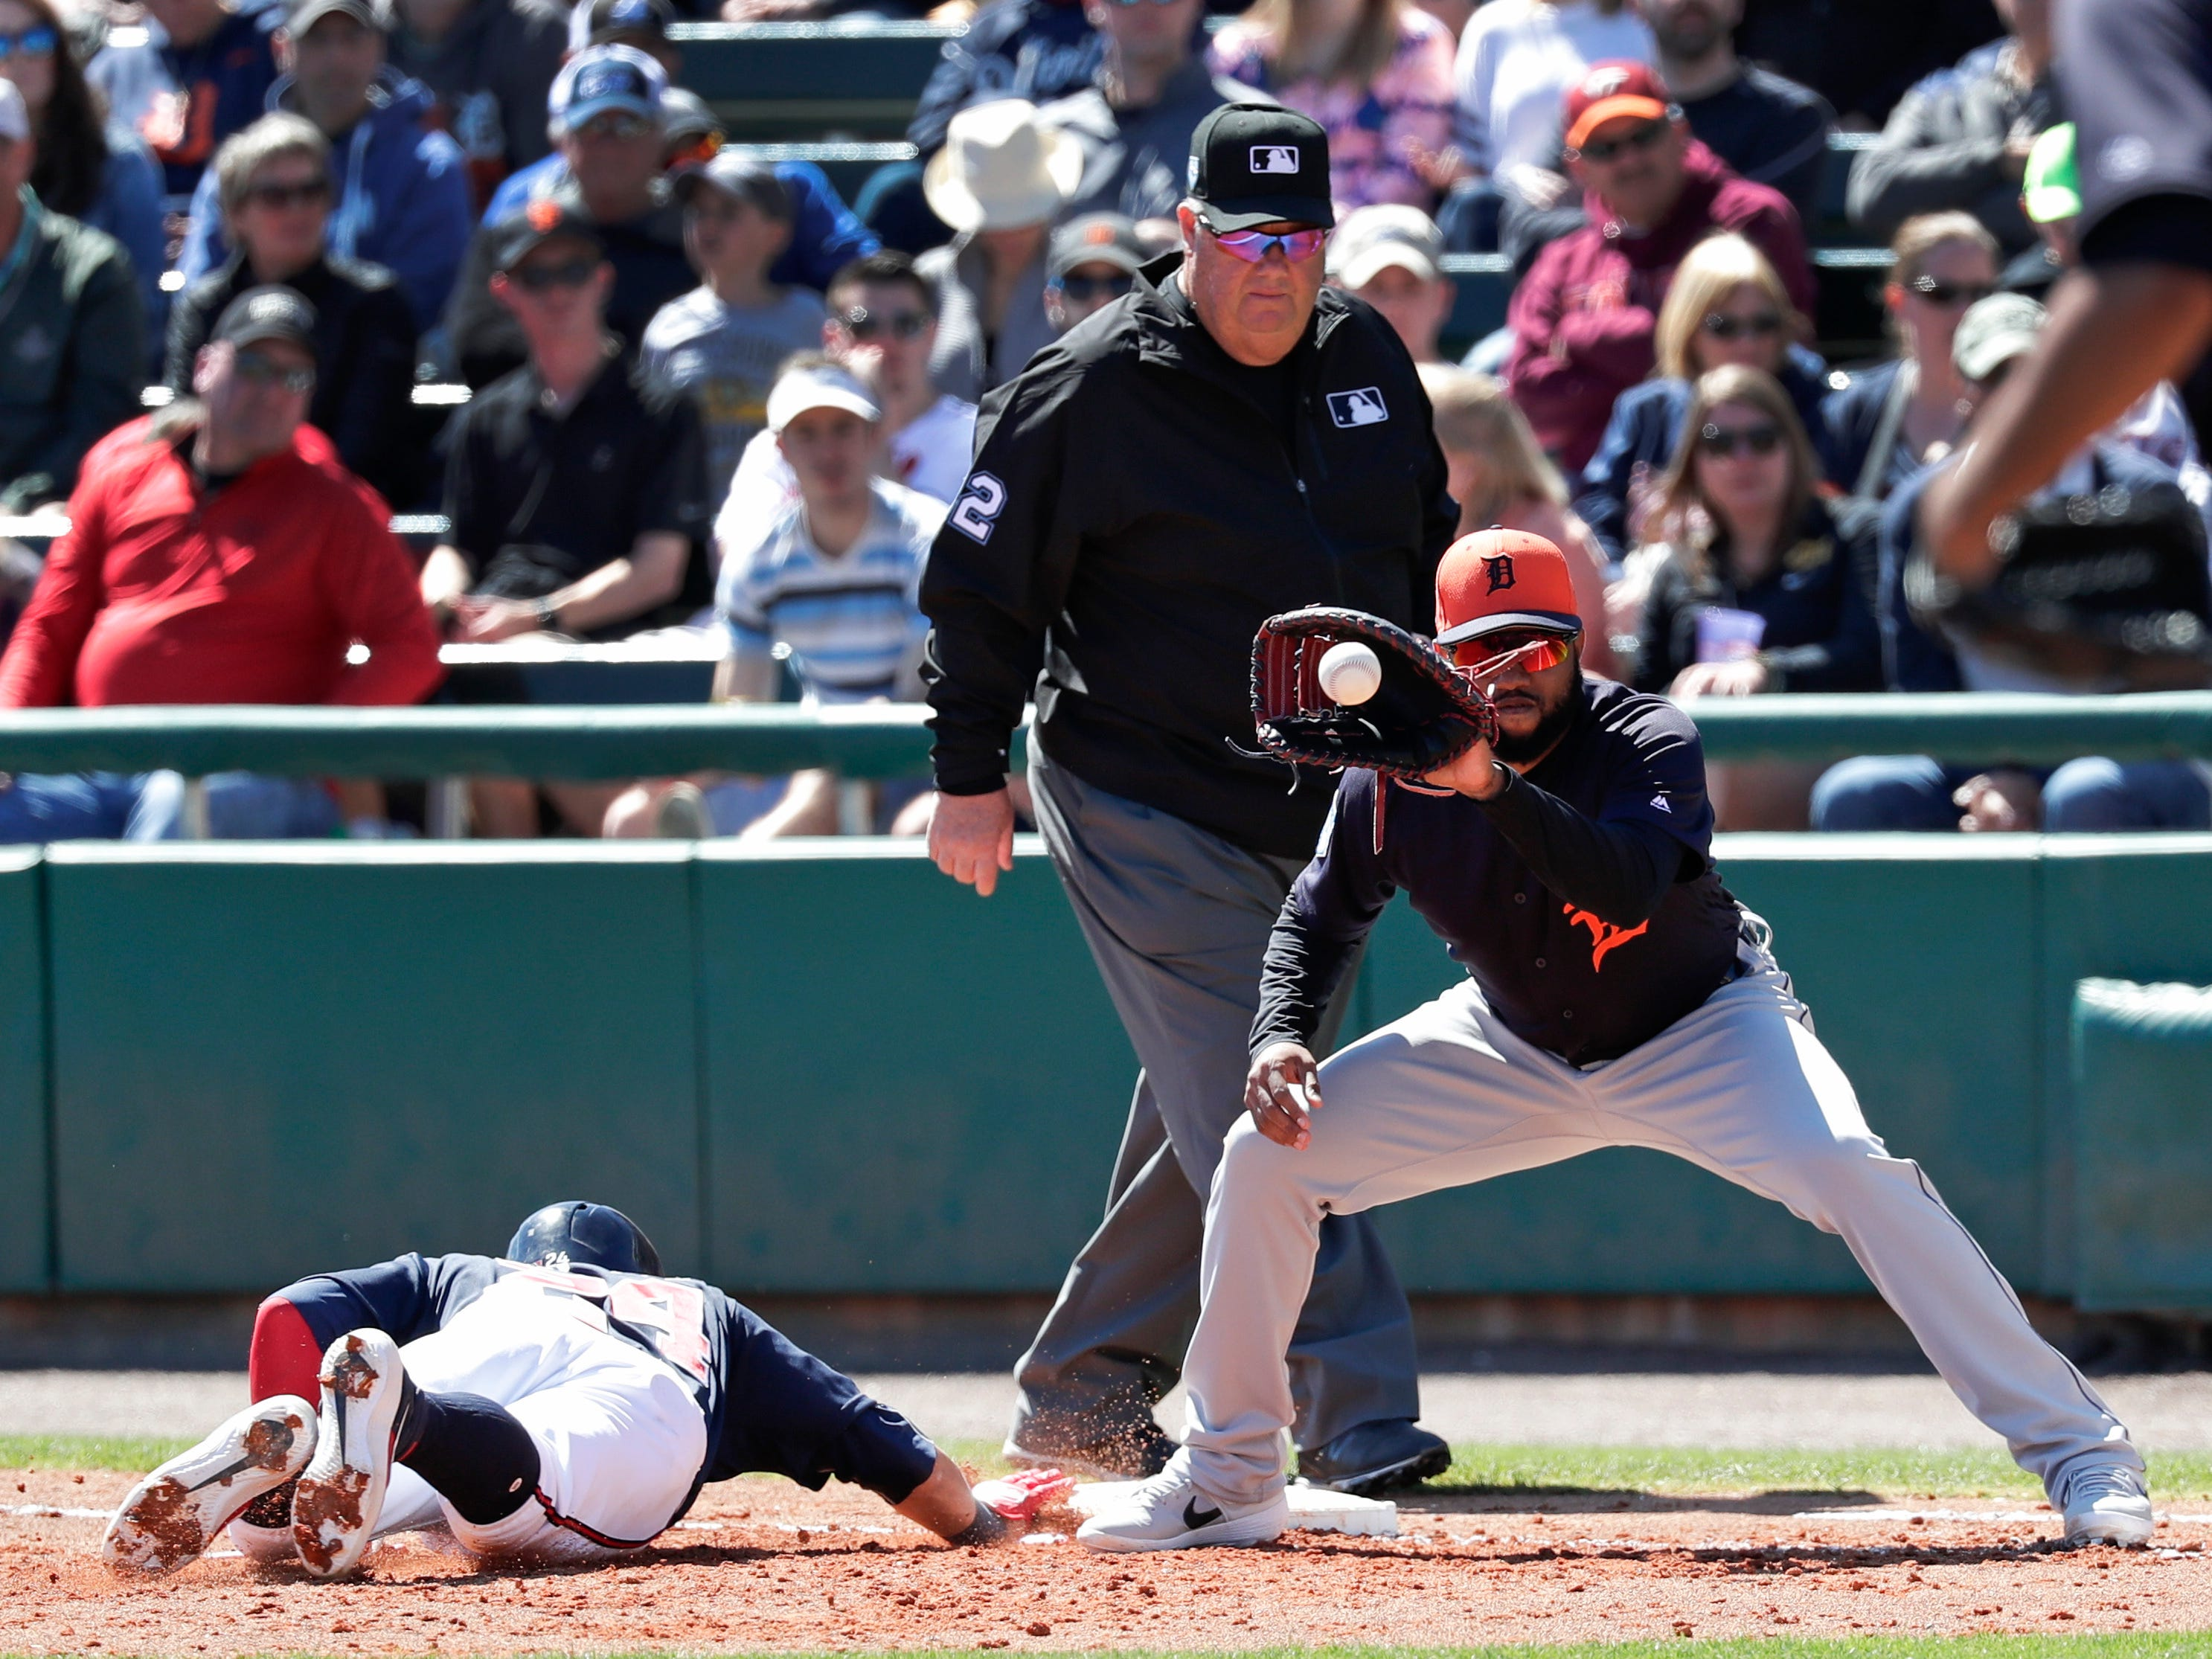 Atlanta Braves' Andres Blanco, left, dives back to first on a pick off attempt in the third inning as Detroit Tigers first baseman Ronny Rodriguez waits for the throw in a spring baseball exhibition game, Wednesday, March 6, 2019, in Kissimmee, Fla.